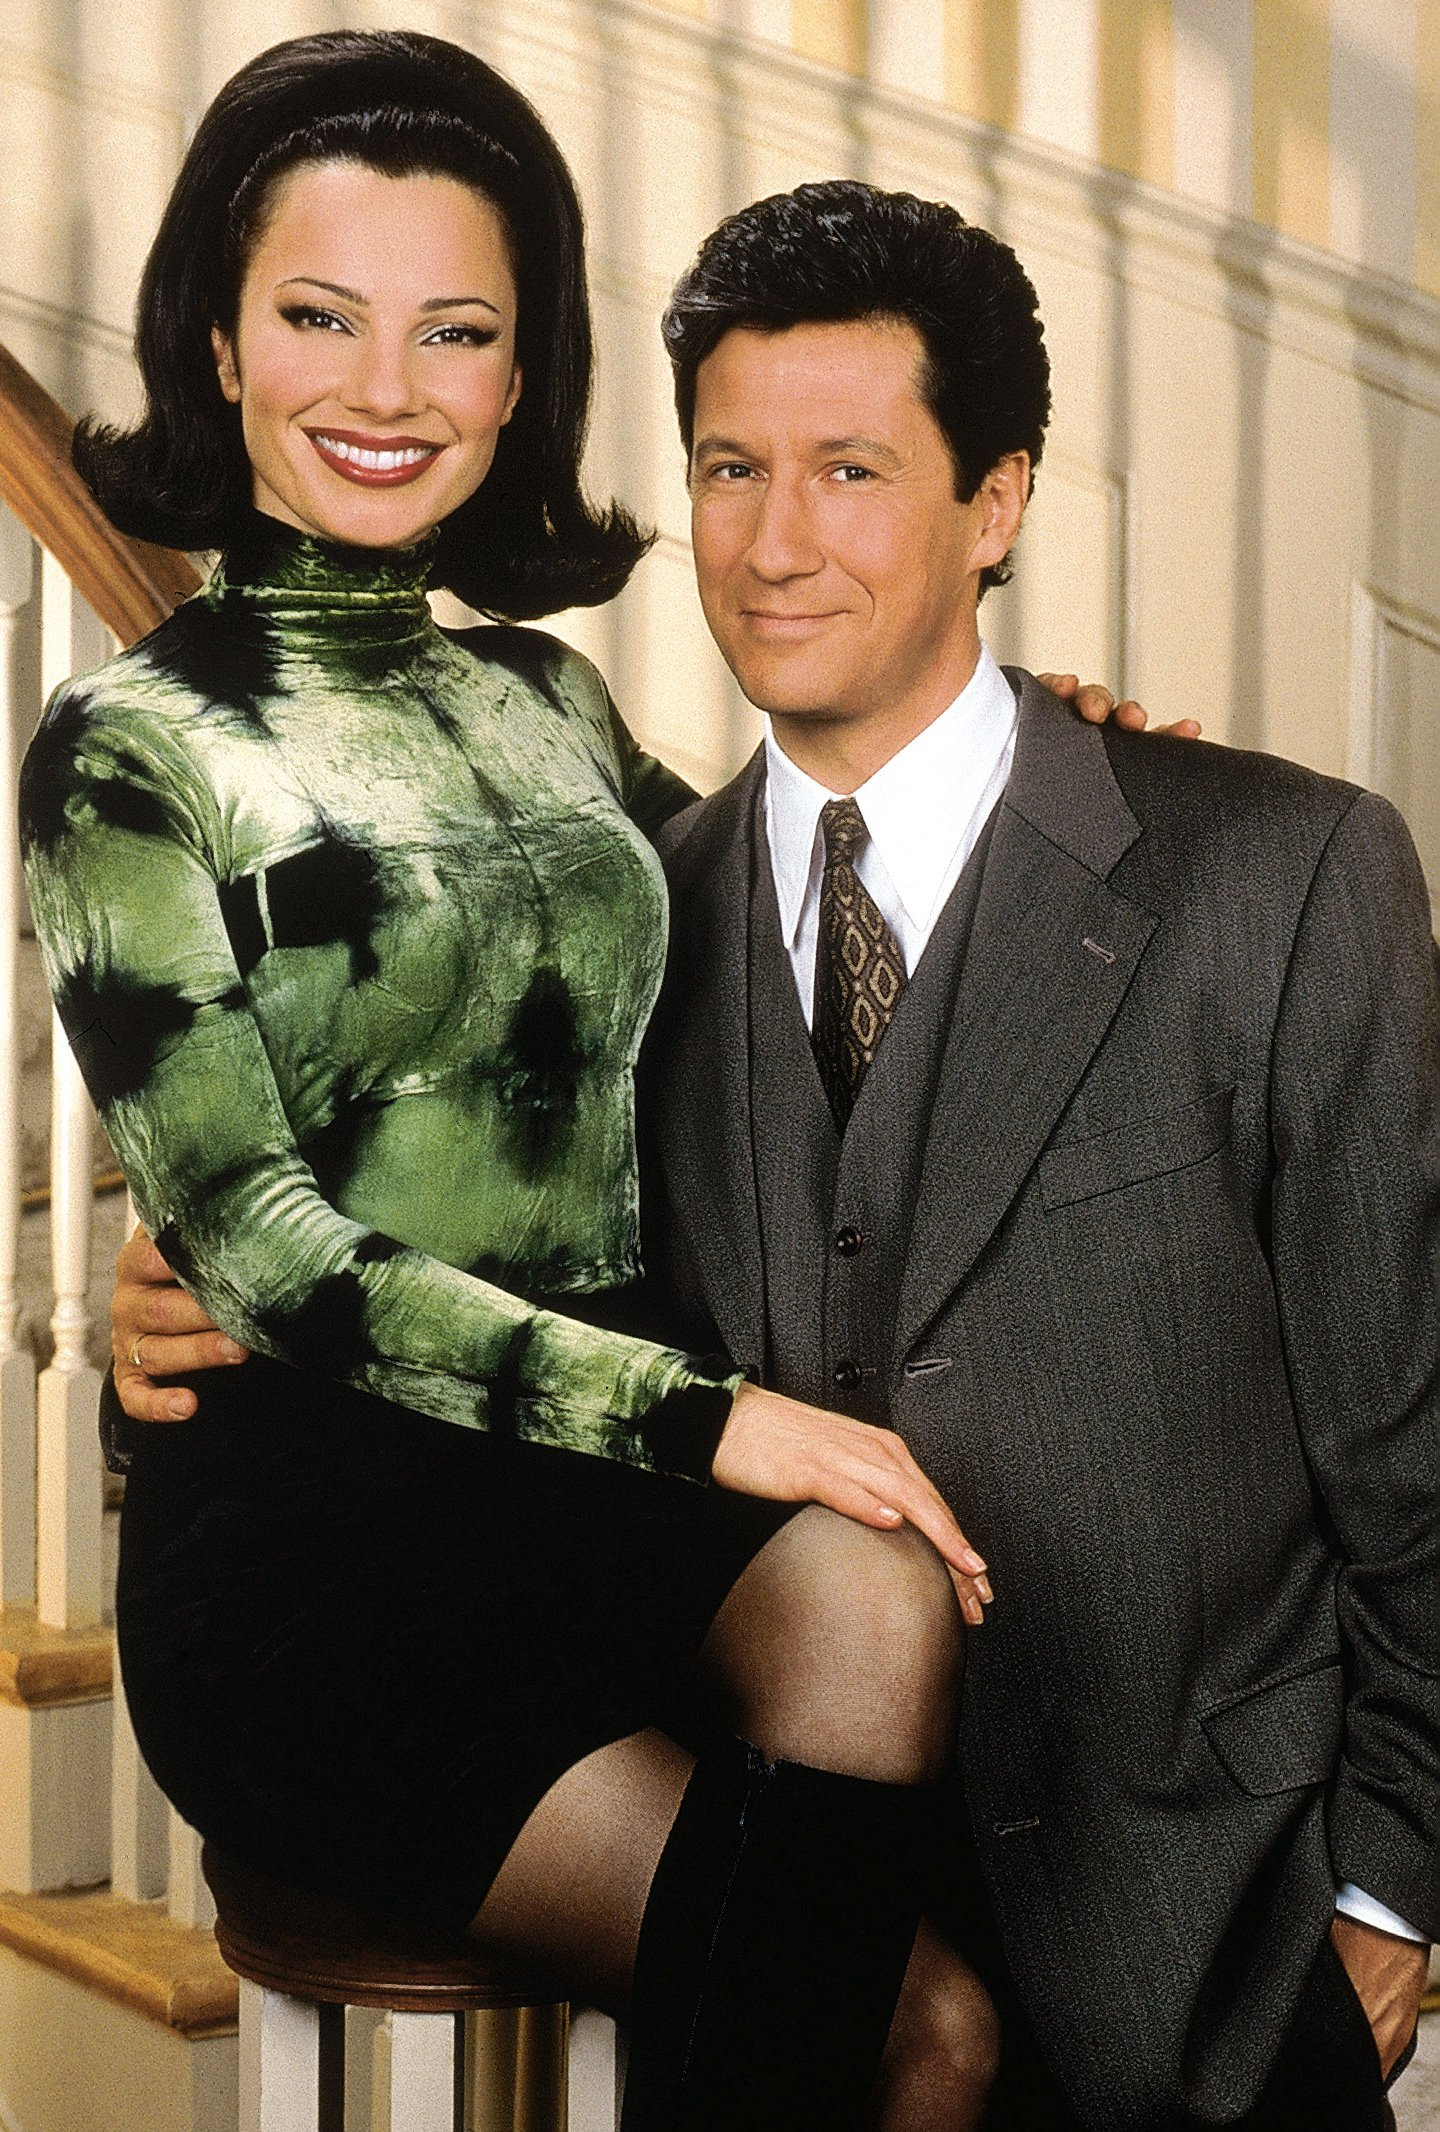 Image result for the nanny charles shaughnessy